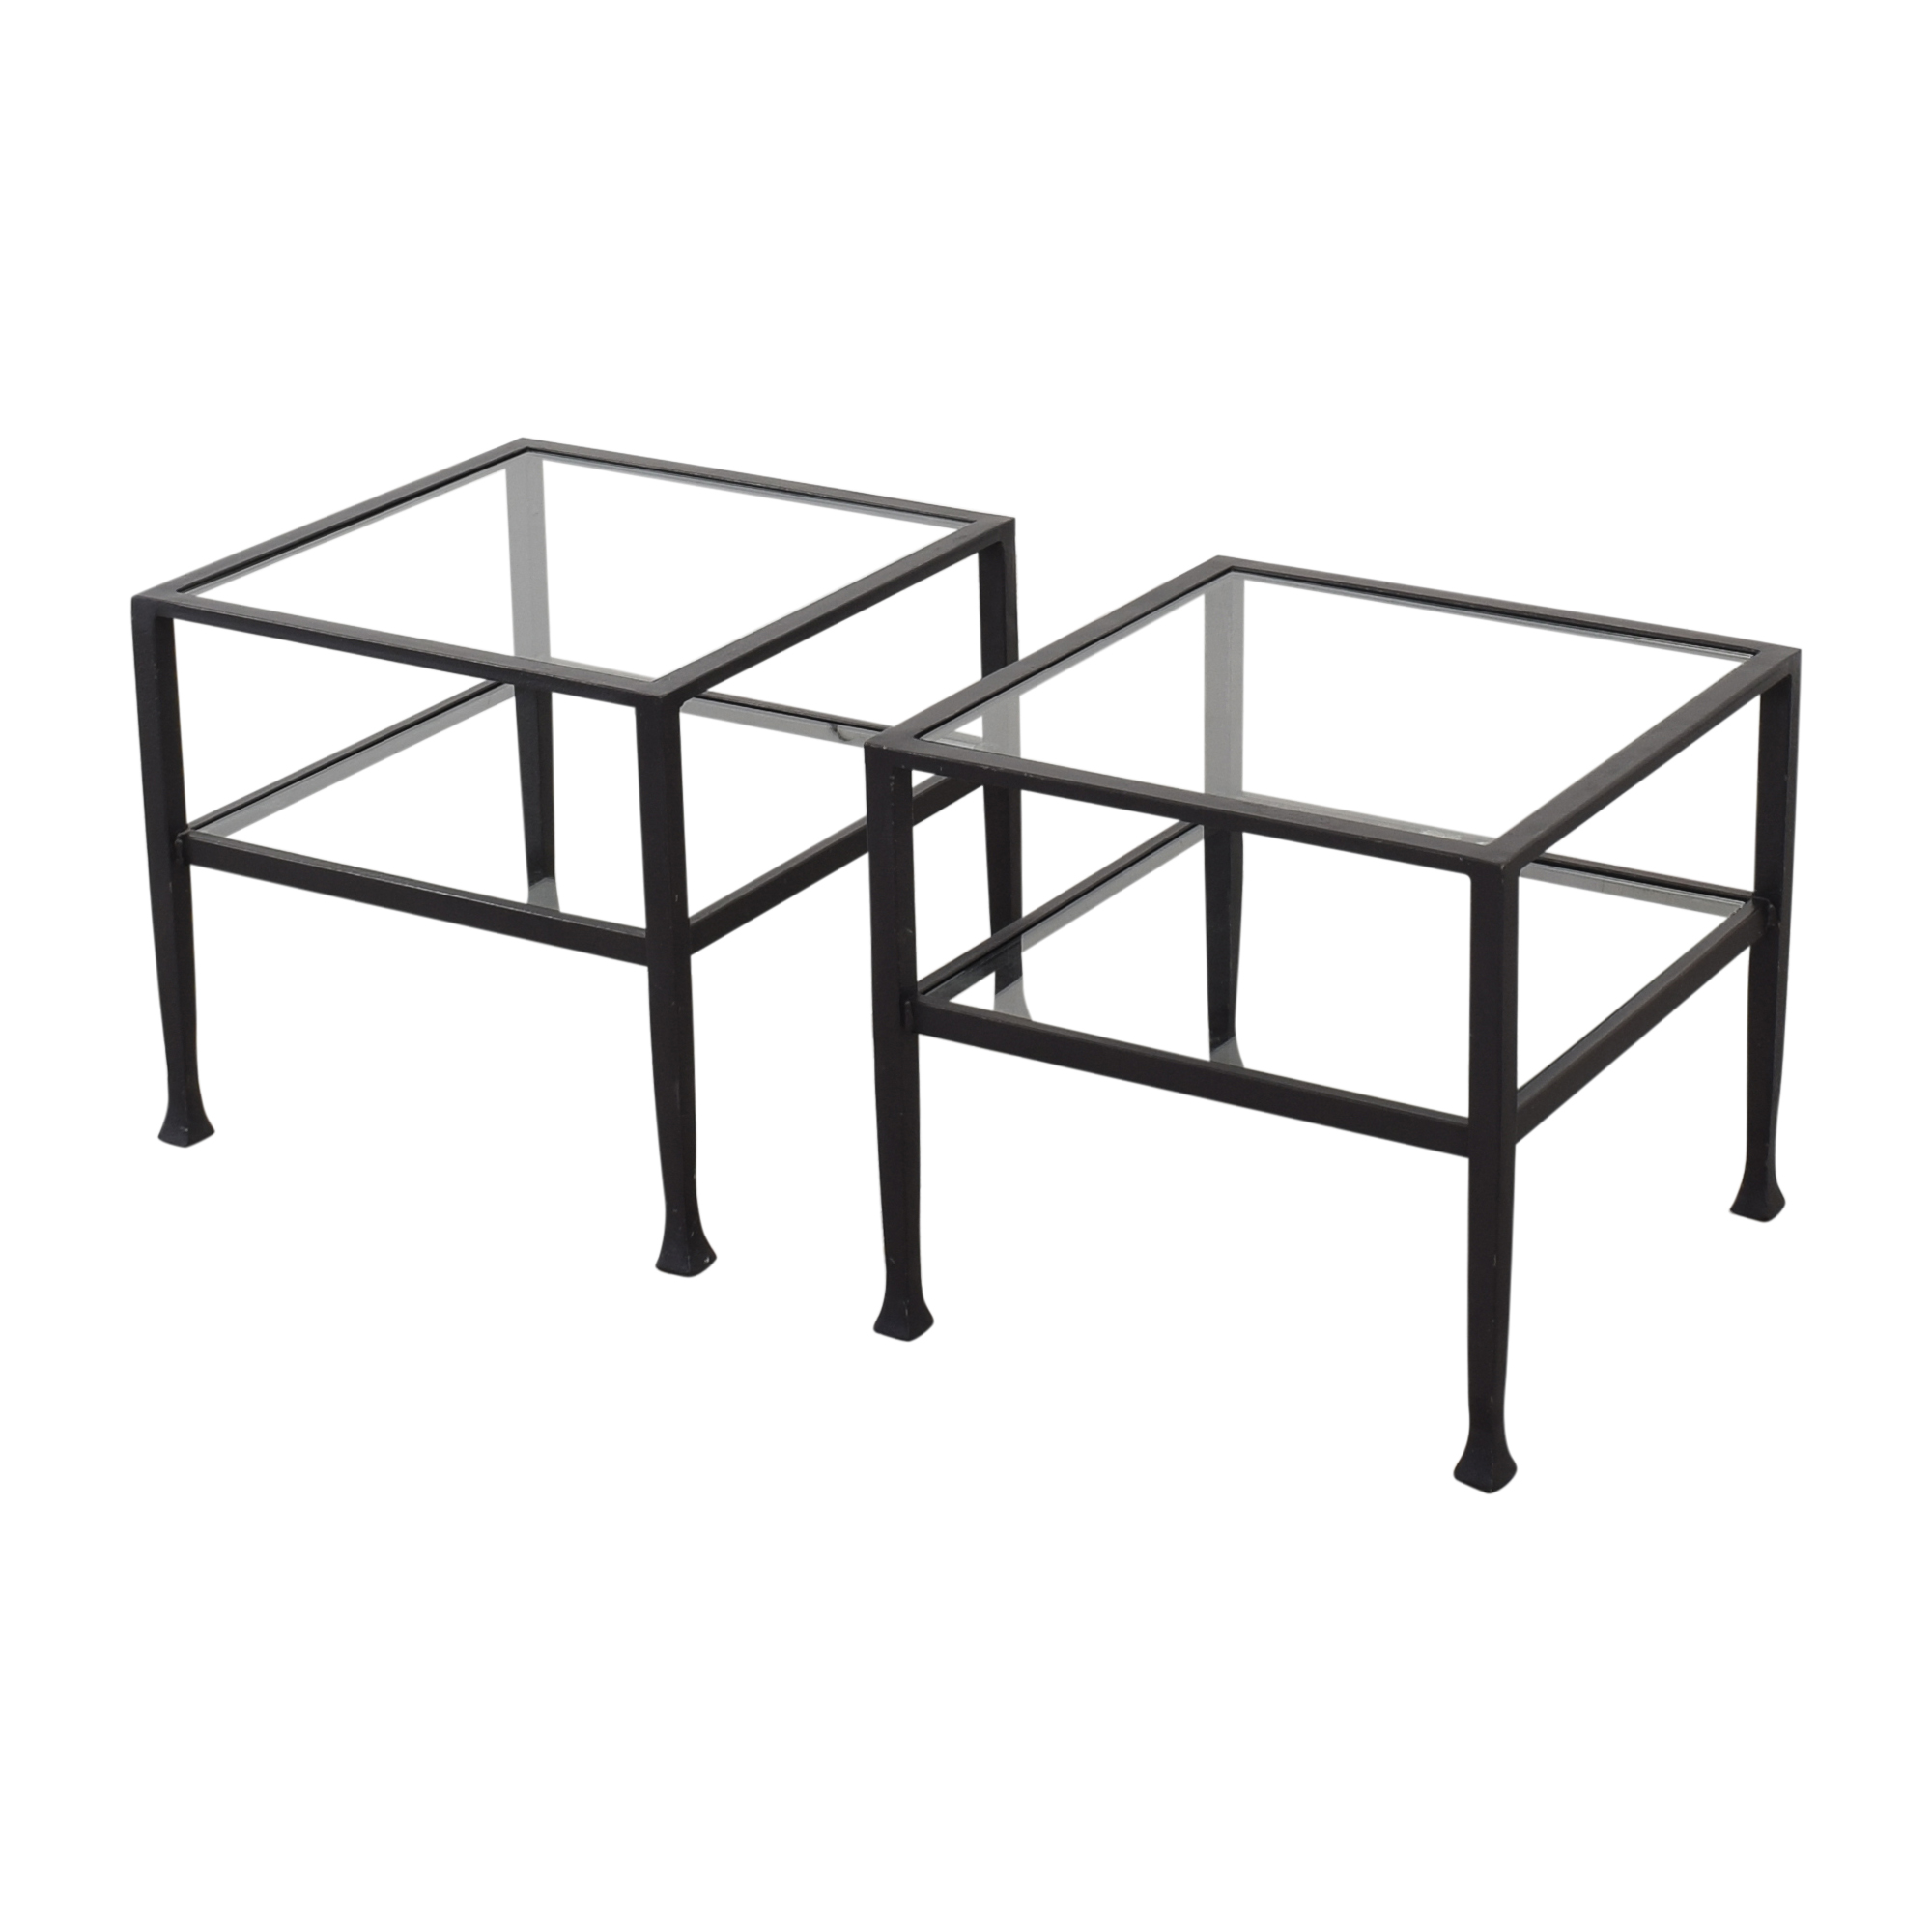 Pottery Barn Tanner Cube Coffee Tables / End Tables